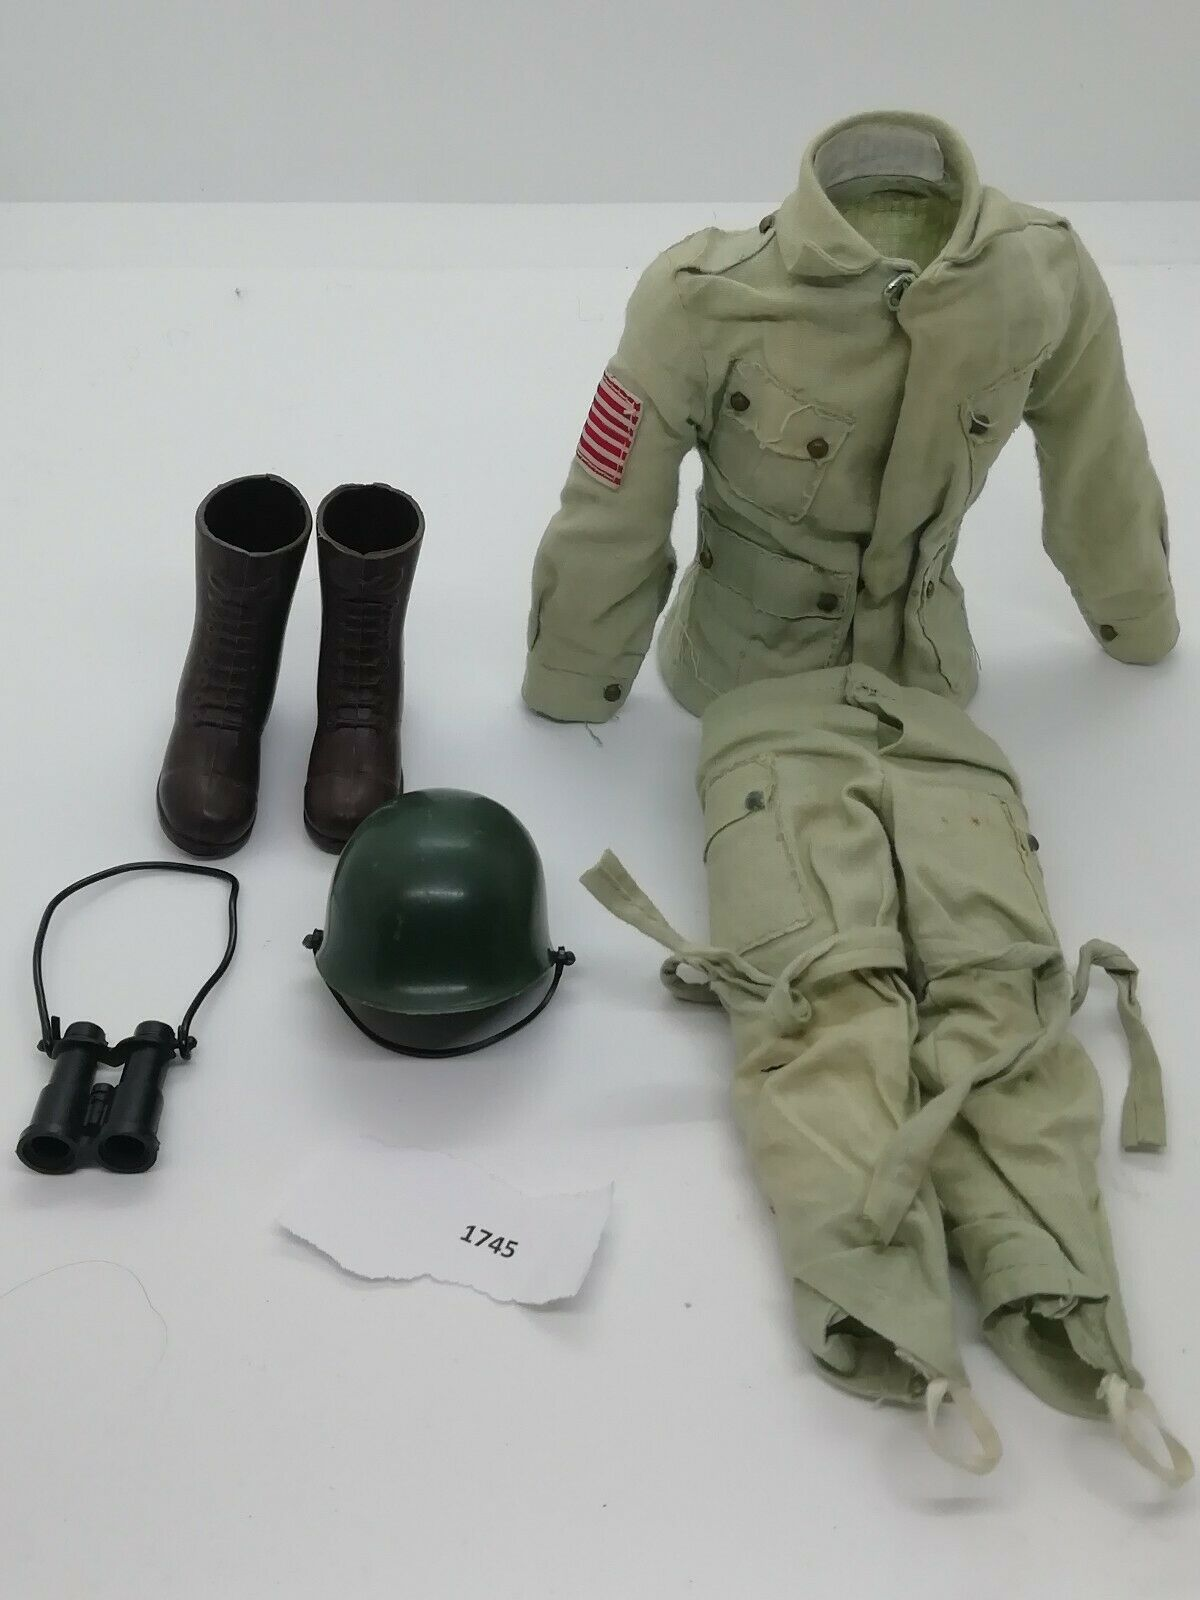 Jahr Wirkung Man original 82 Airbourne US paratrooper Uniform Outfit